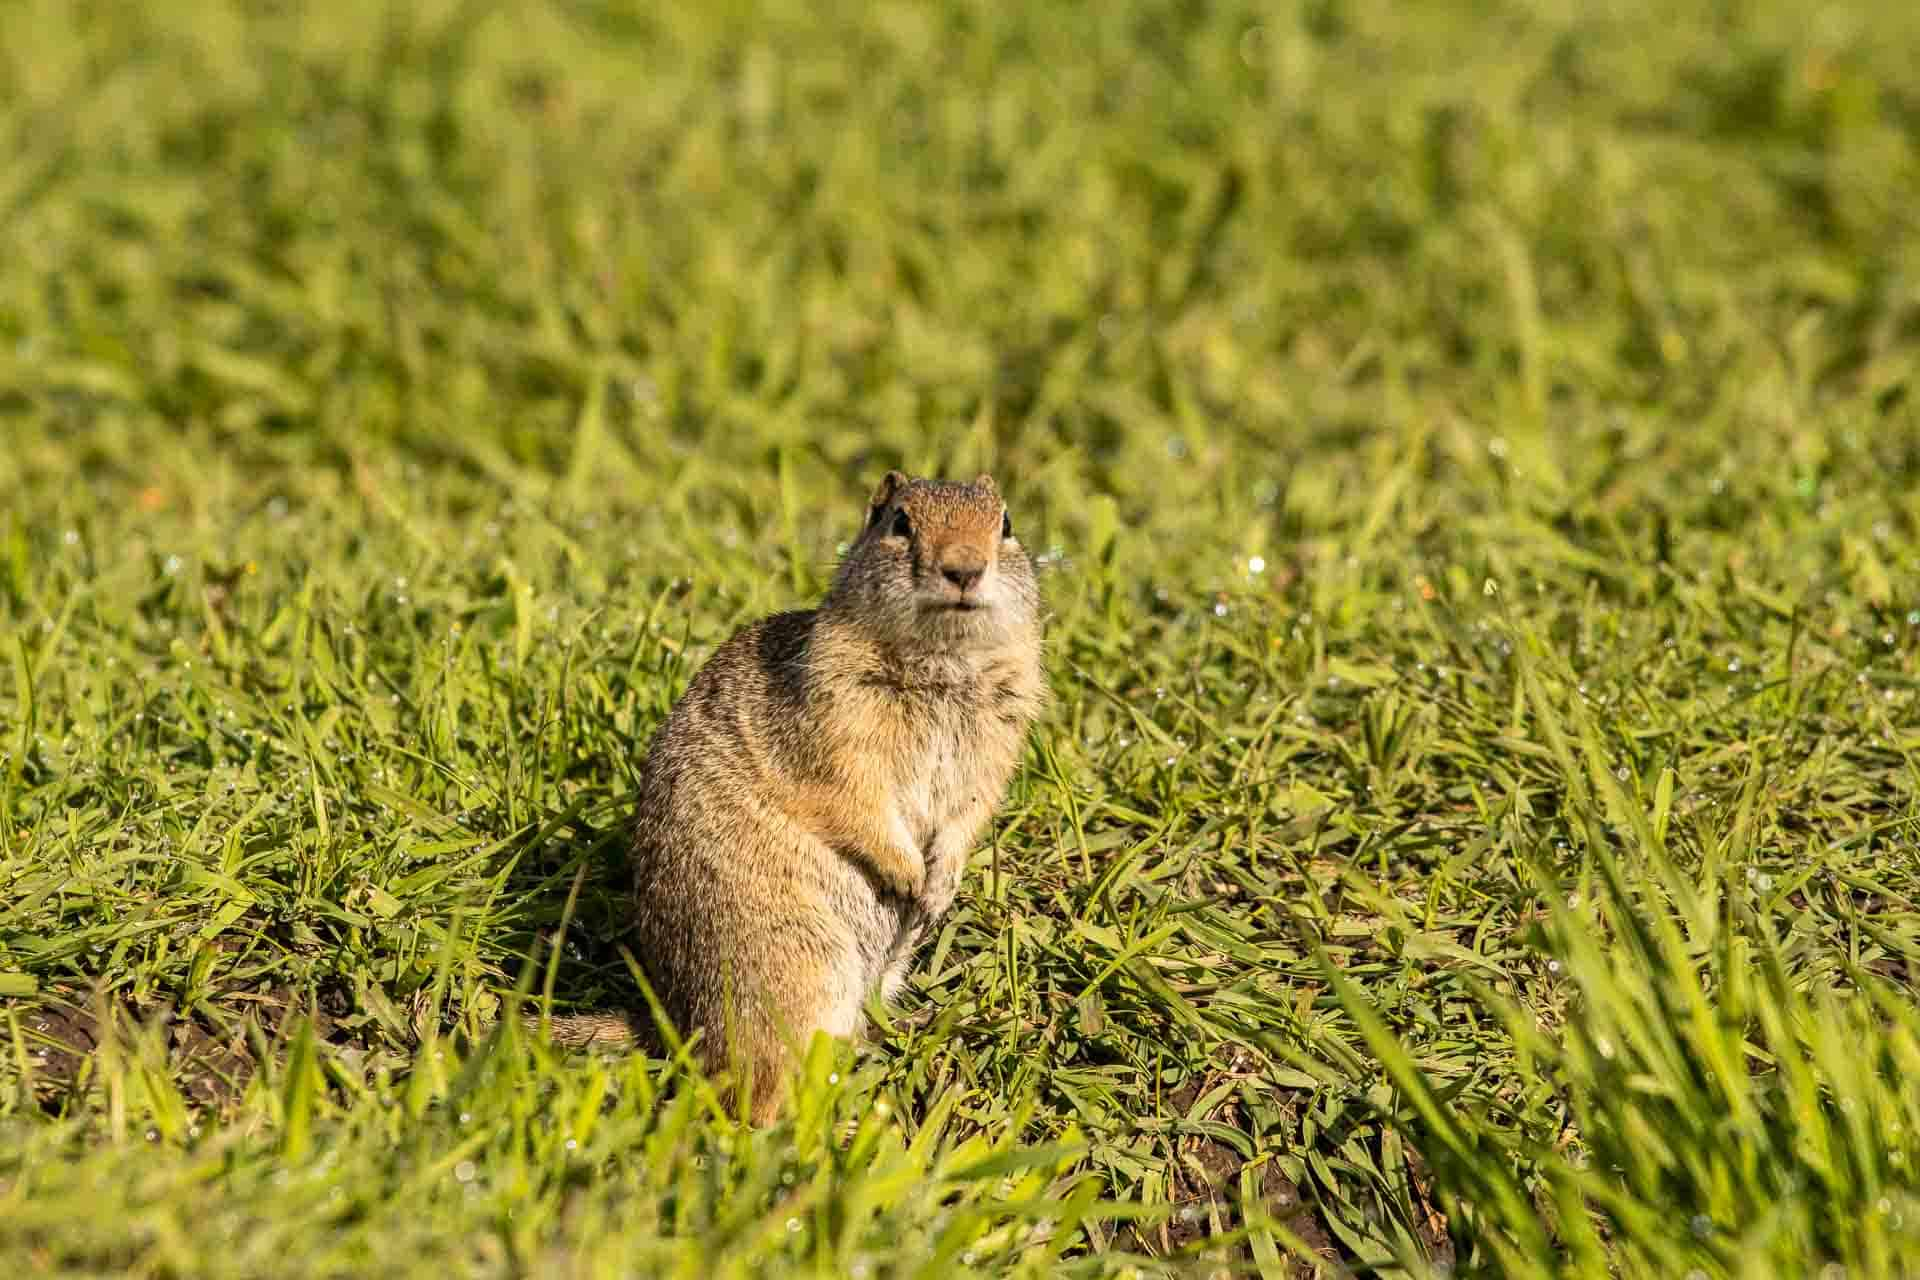 Ground squirrel checking out its surroundings